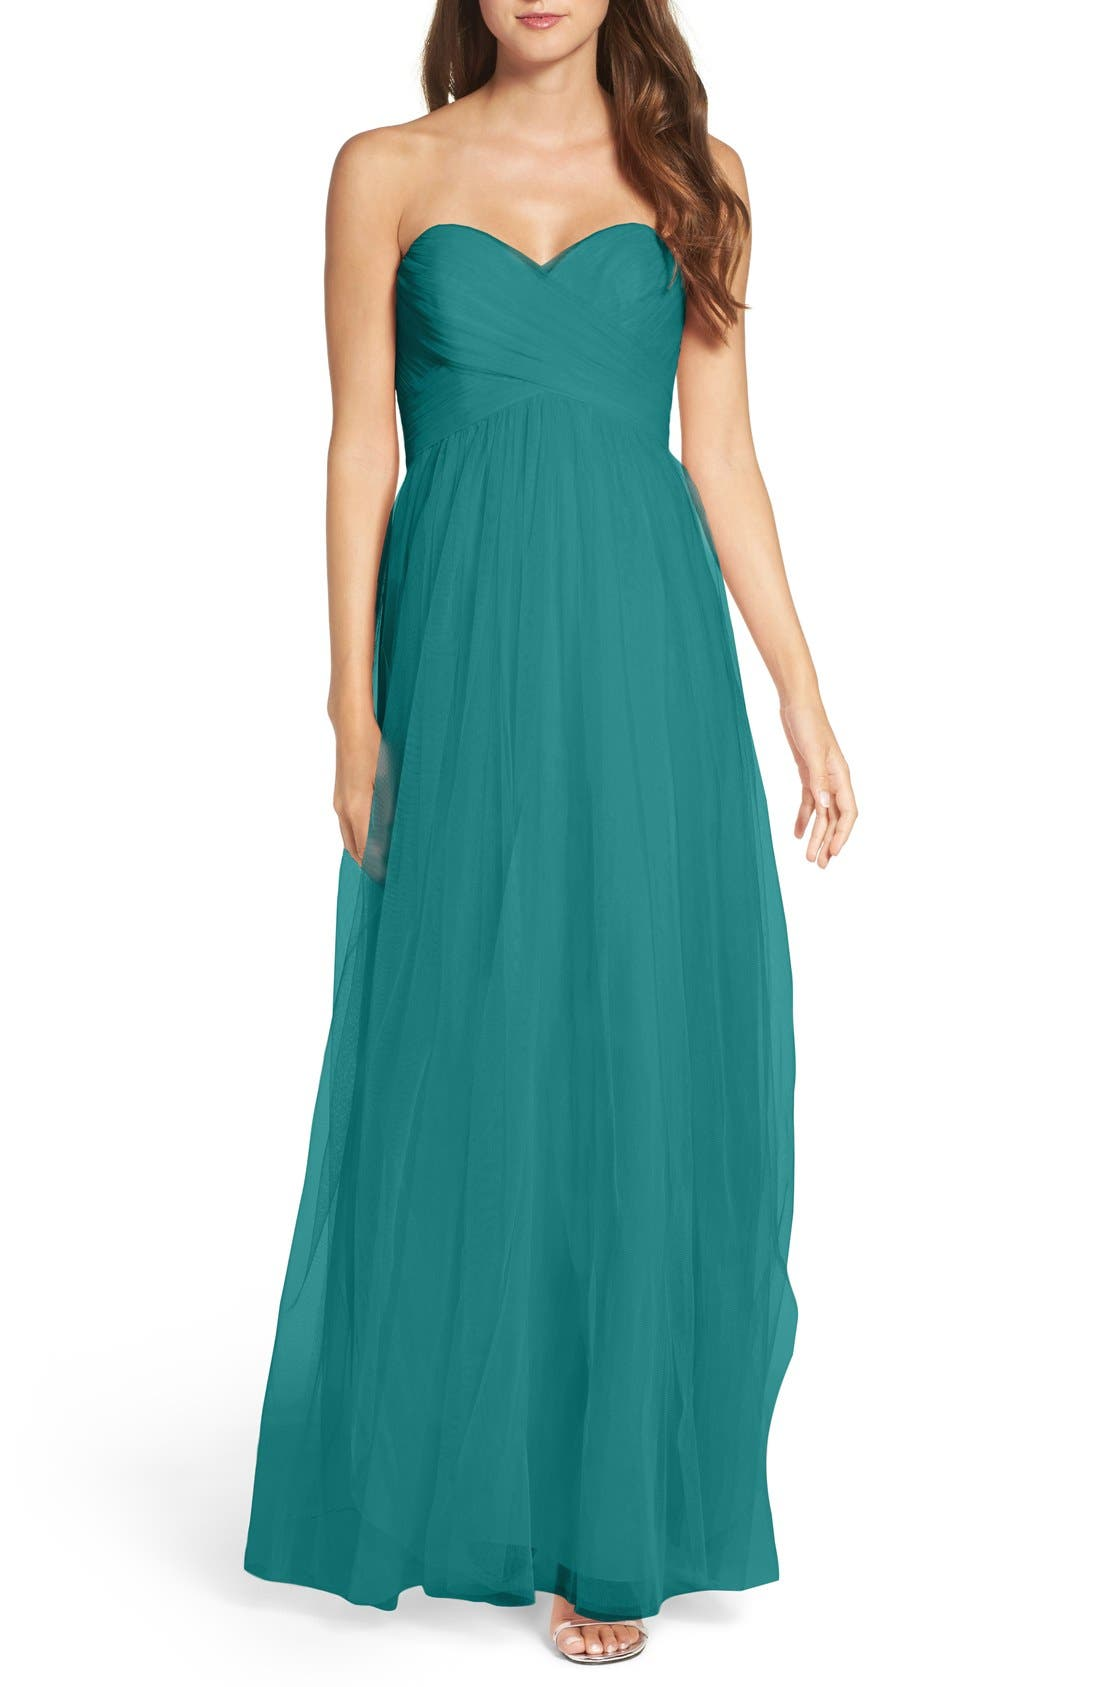 Alternate Image 1 Selected - WTOO Convertible Strap Tulle Gown